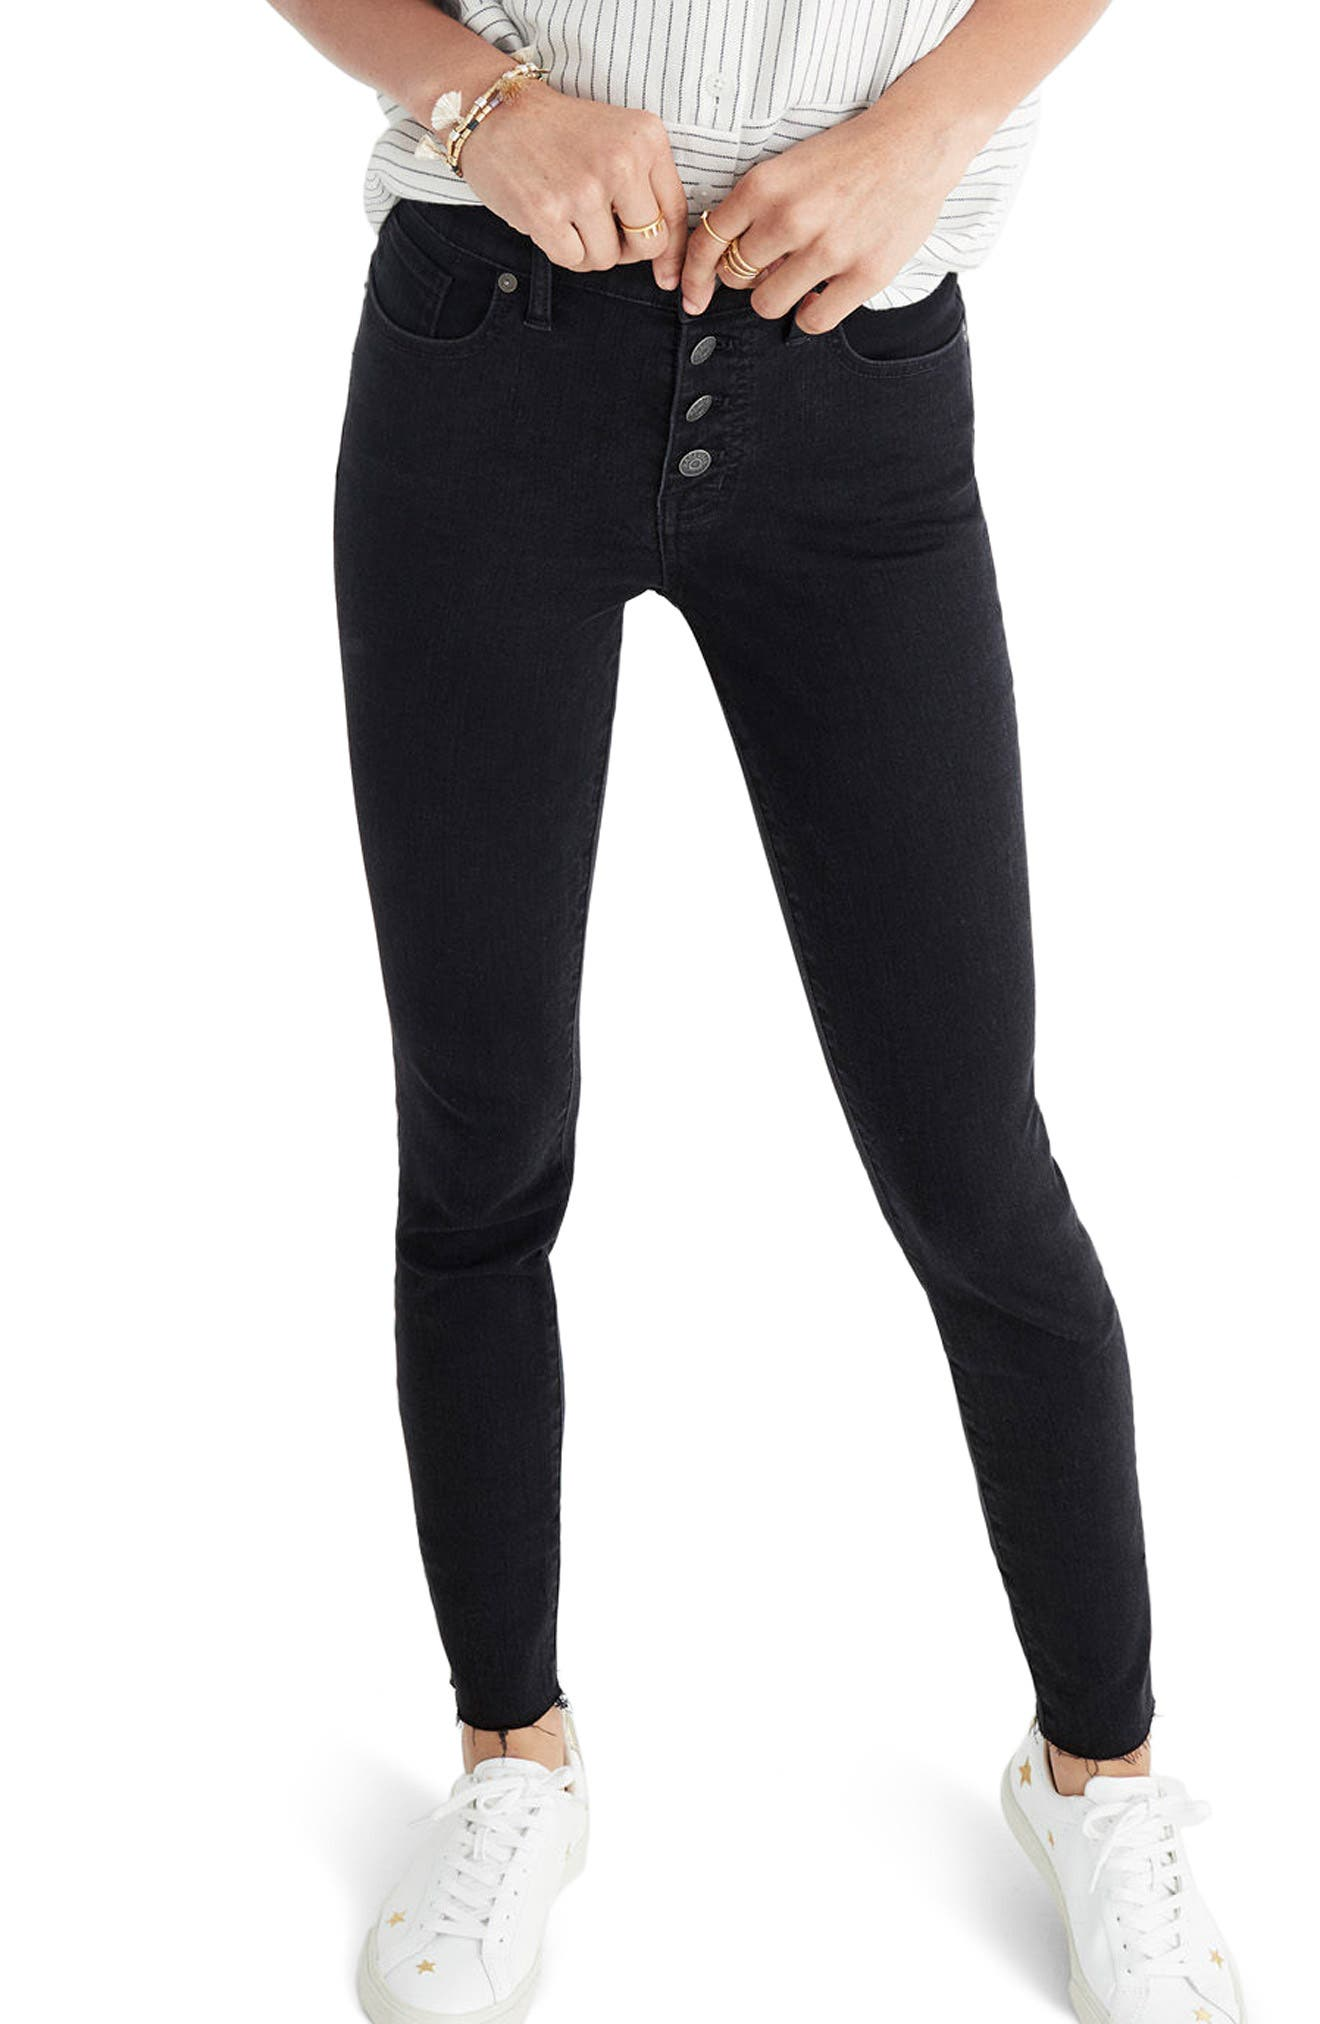 Alternate Image 1 Selected - Madewell 9-Inch Button High Waist Ankle Skinny Jeans (Berkeley Wash)